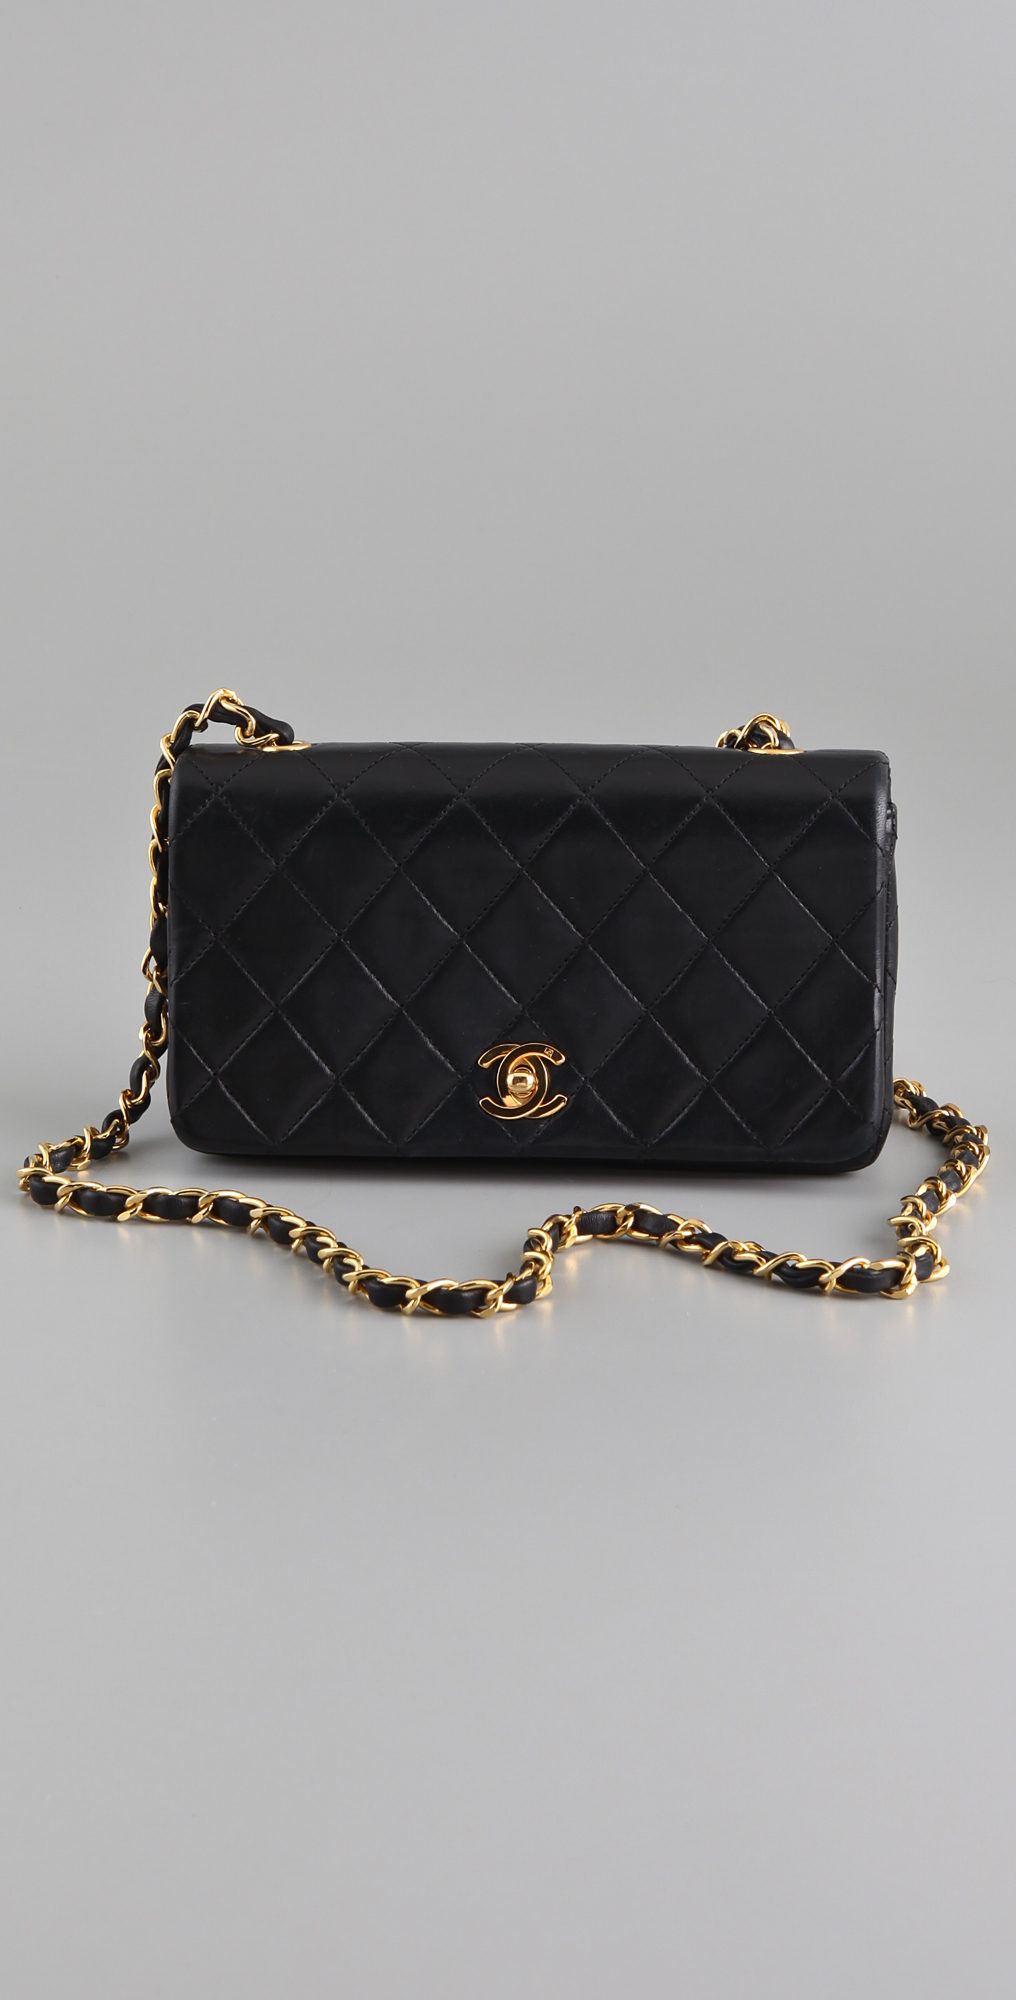 4ff28be3c6b651 WGACA Vintage Vintage Chanel Classic Quilted Bag on PopScreen